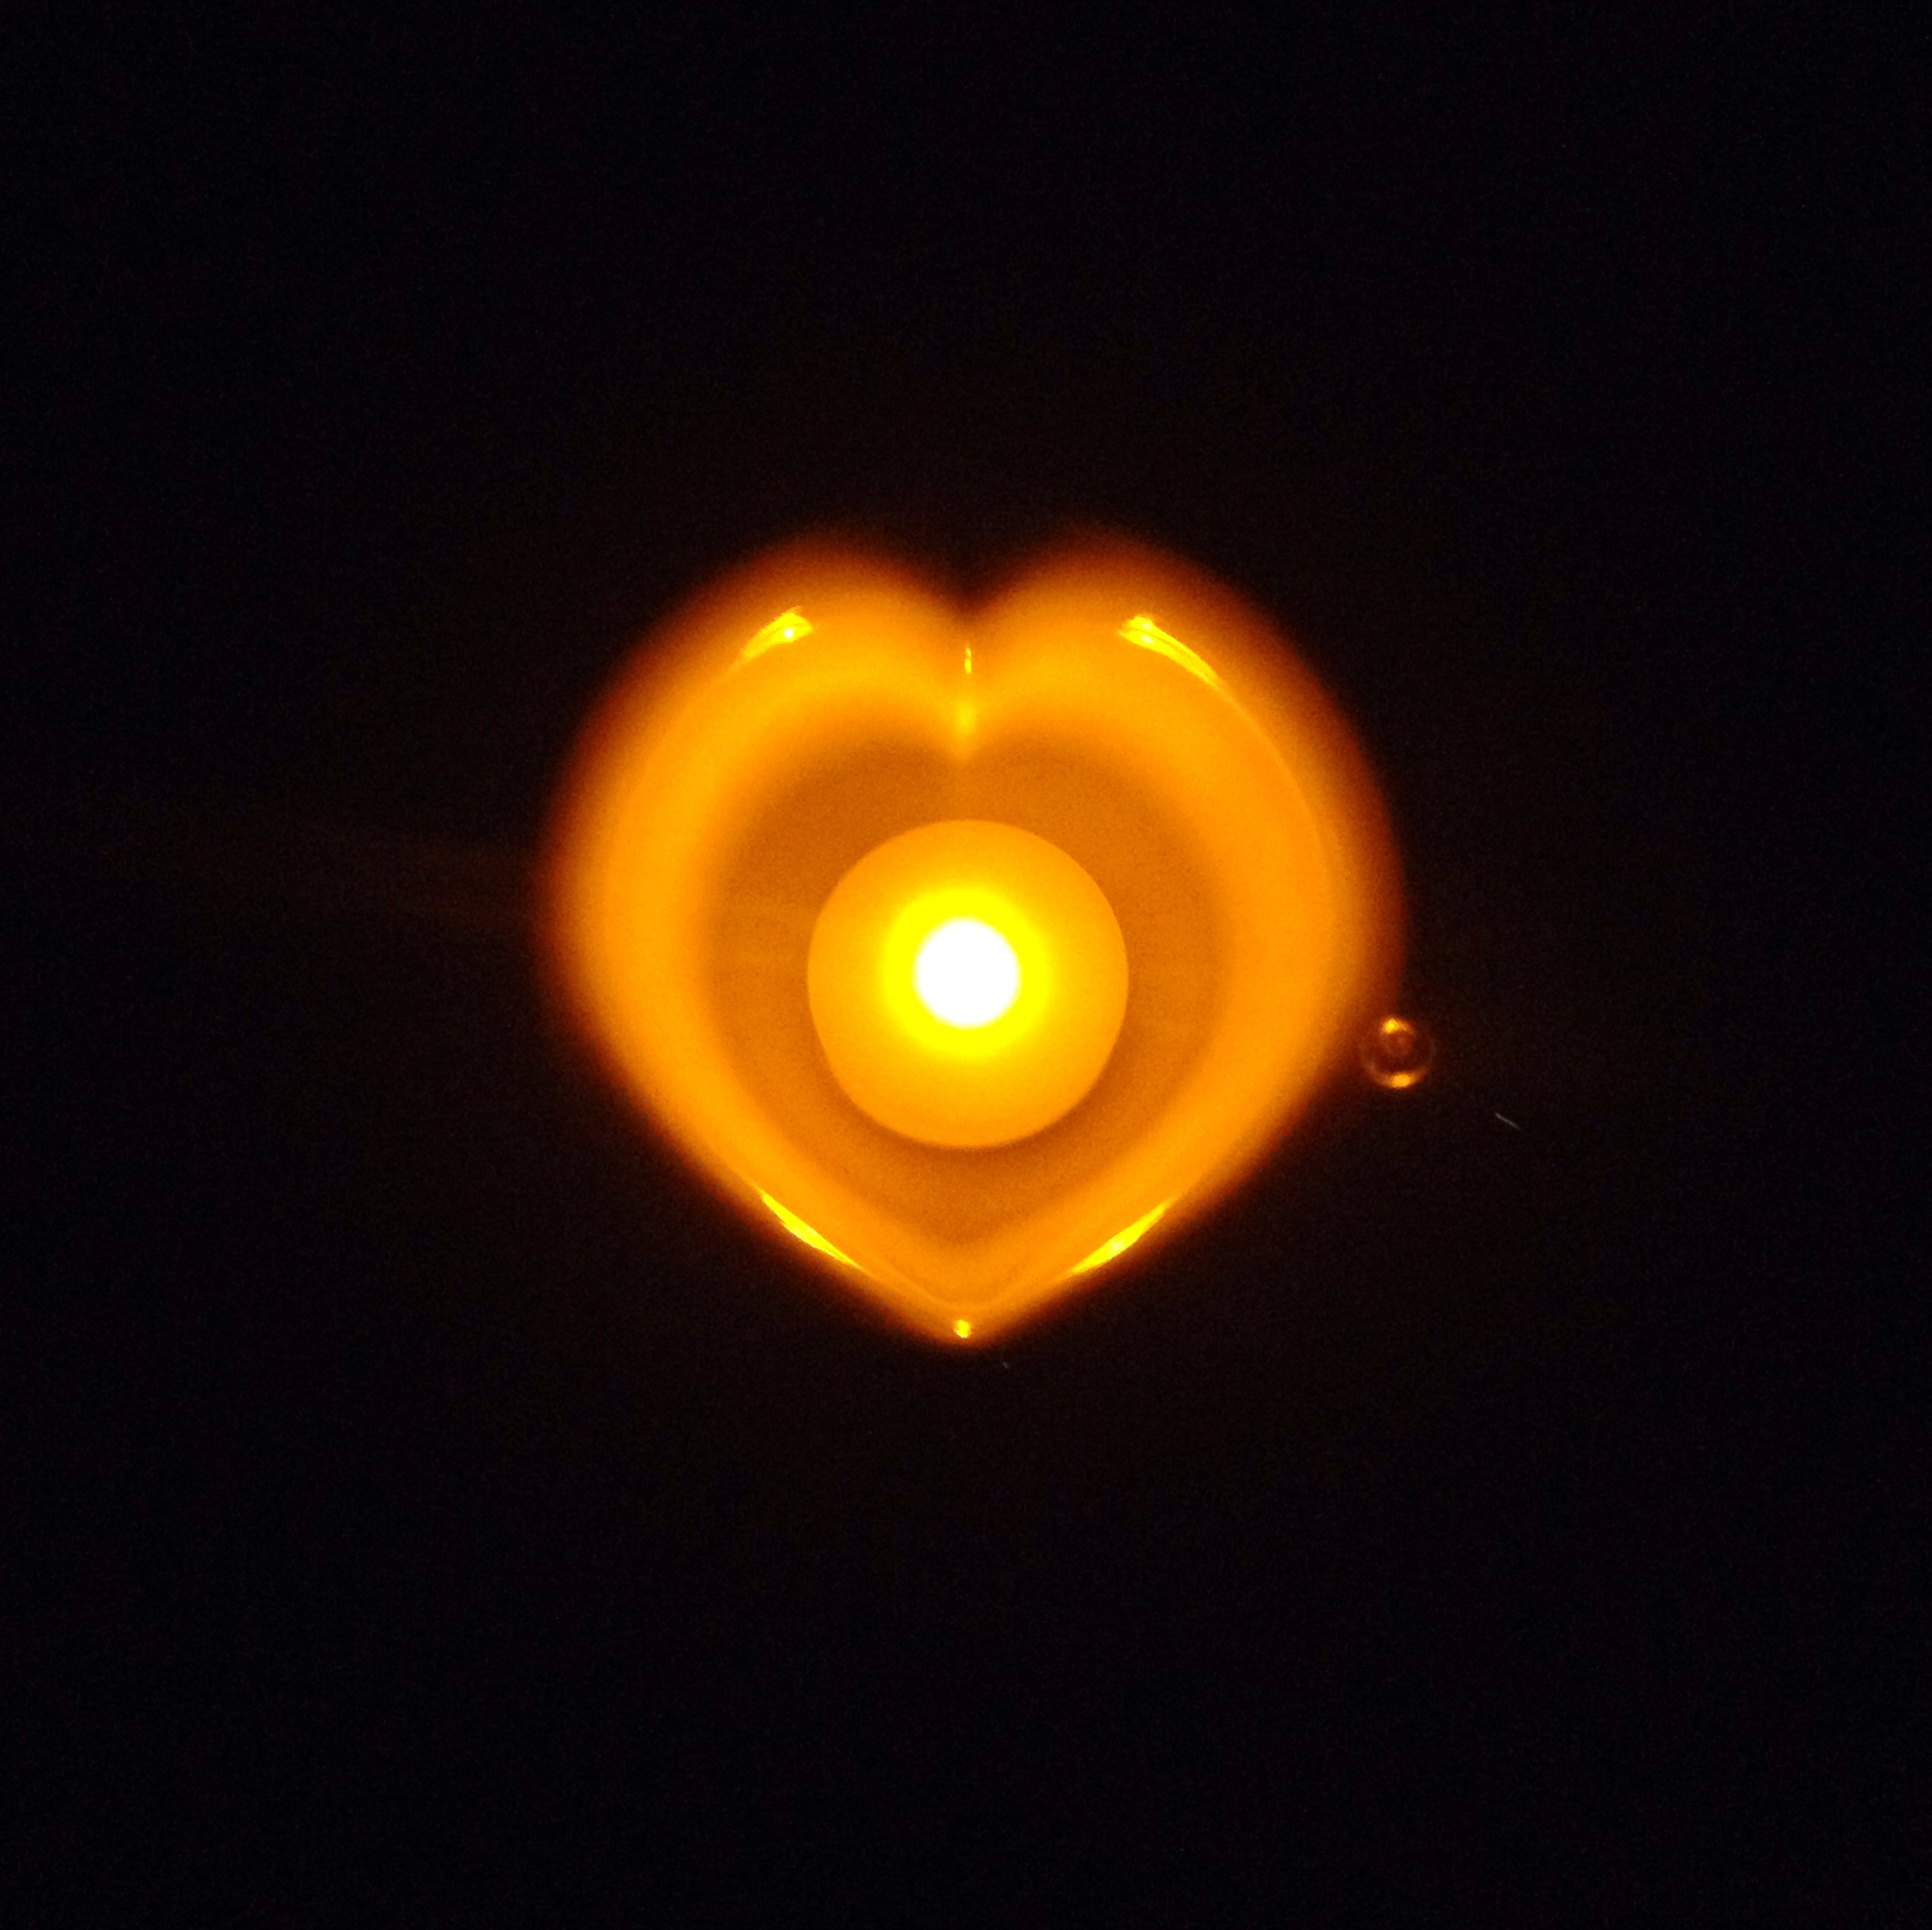 The idea of illuminating one of our lovely heart shaped tea cups with the warmth of a candle came to us from one of our supporters who  brightens up her home (her kitchen) in this way – see the photo above for the glowing light.  A heart shaped tea cup can  brighten up anyone's day!